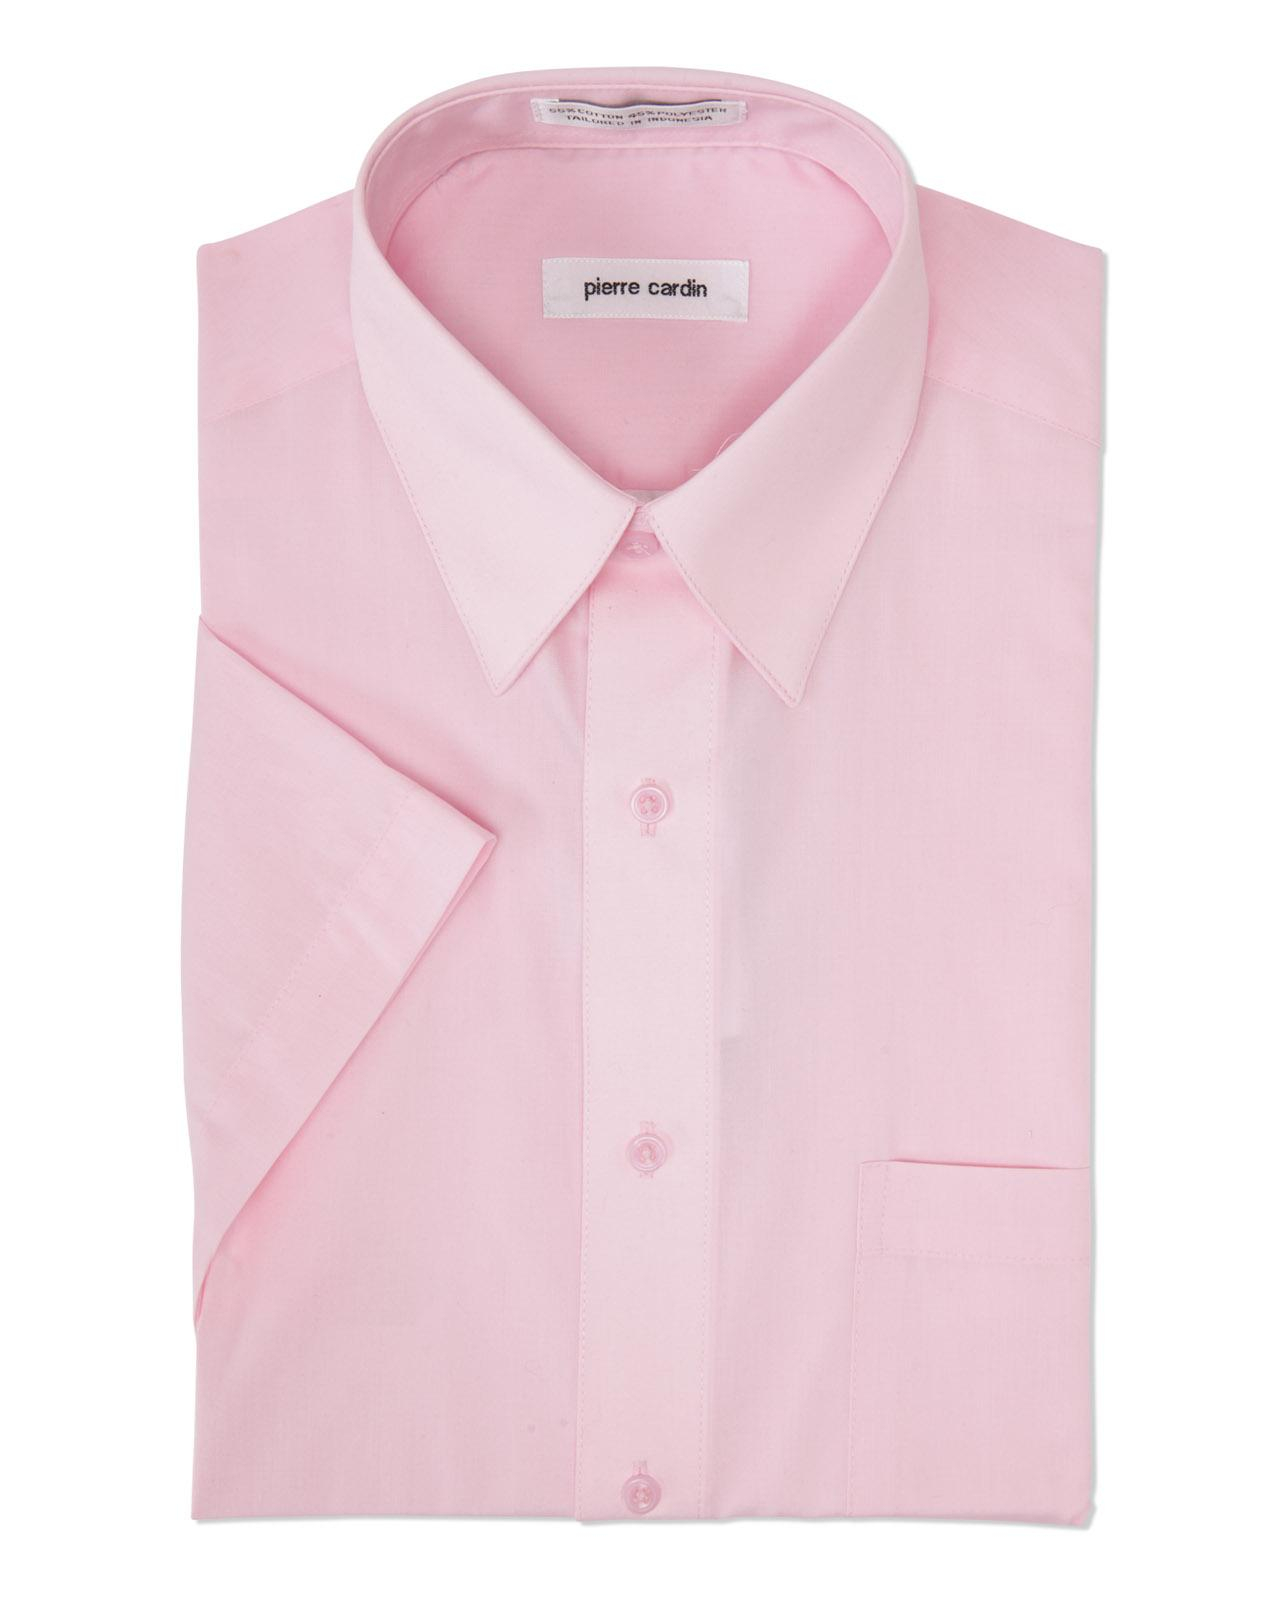 Pierre Cardin Pink Short Sleeve Dress Shirt In Pink For